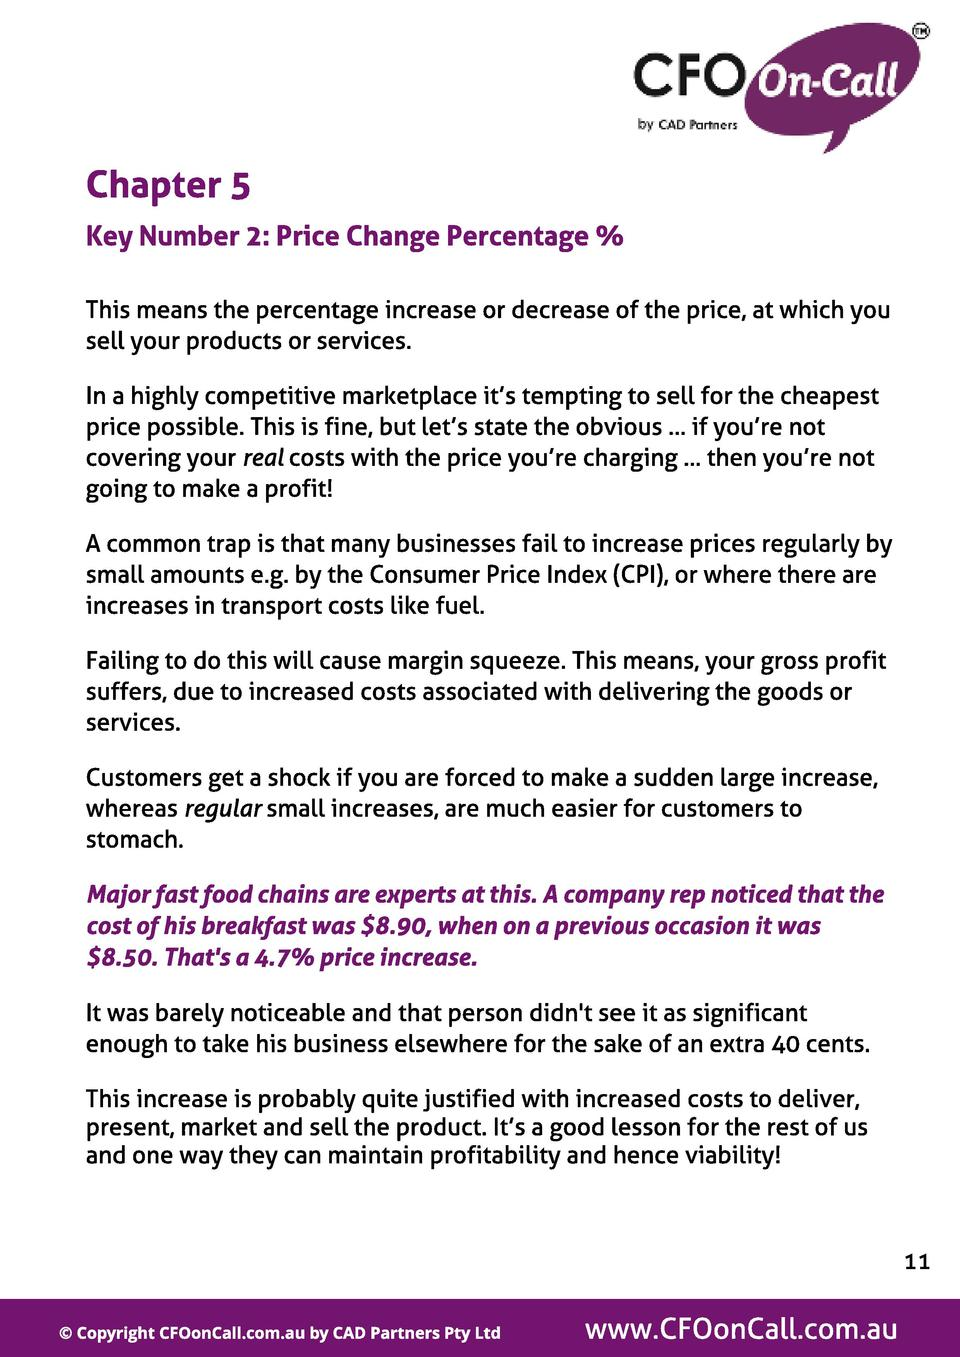 Chapt er 5 Key Number 2  Price Change Percent age   This means the percentage increase or decrease of the price, at which ...